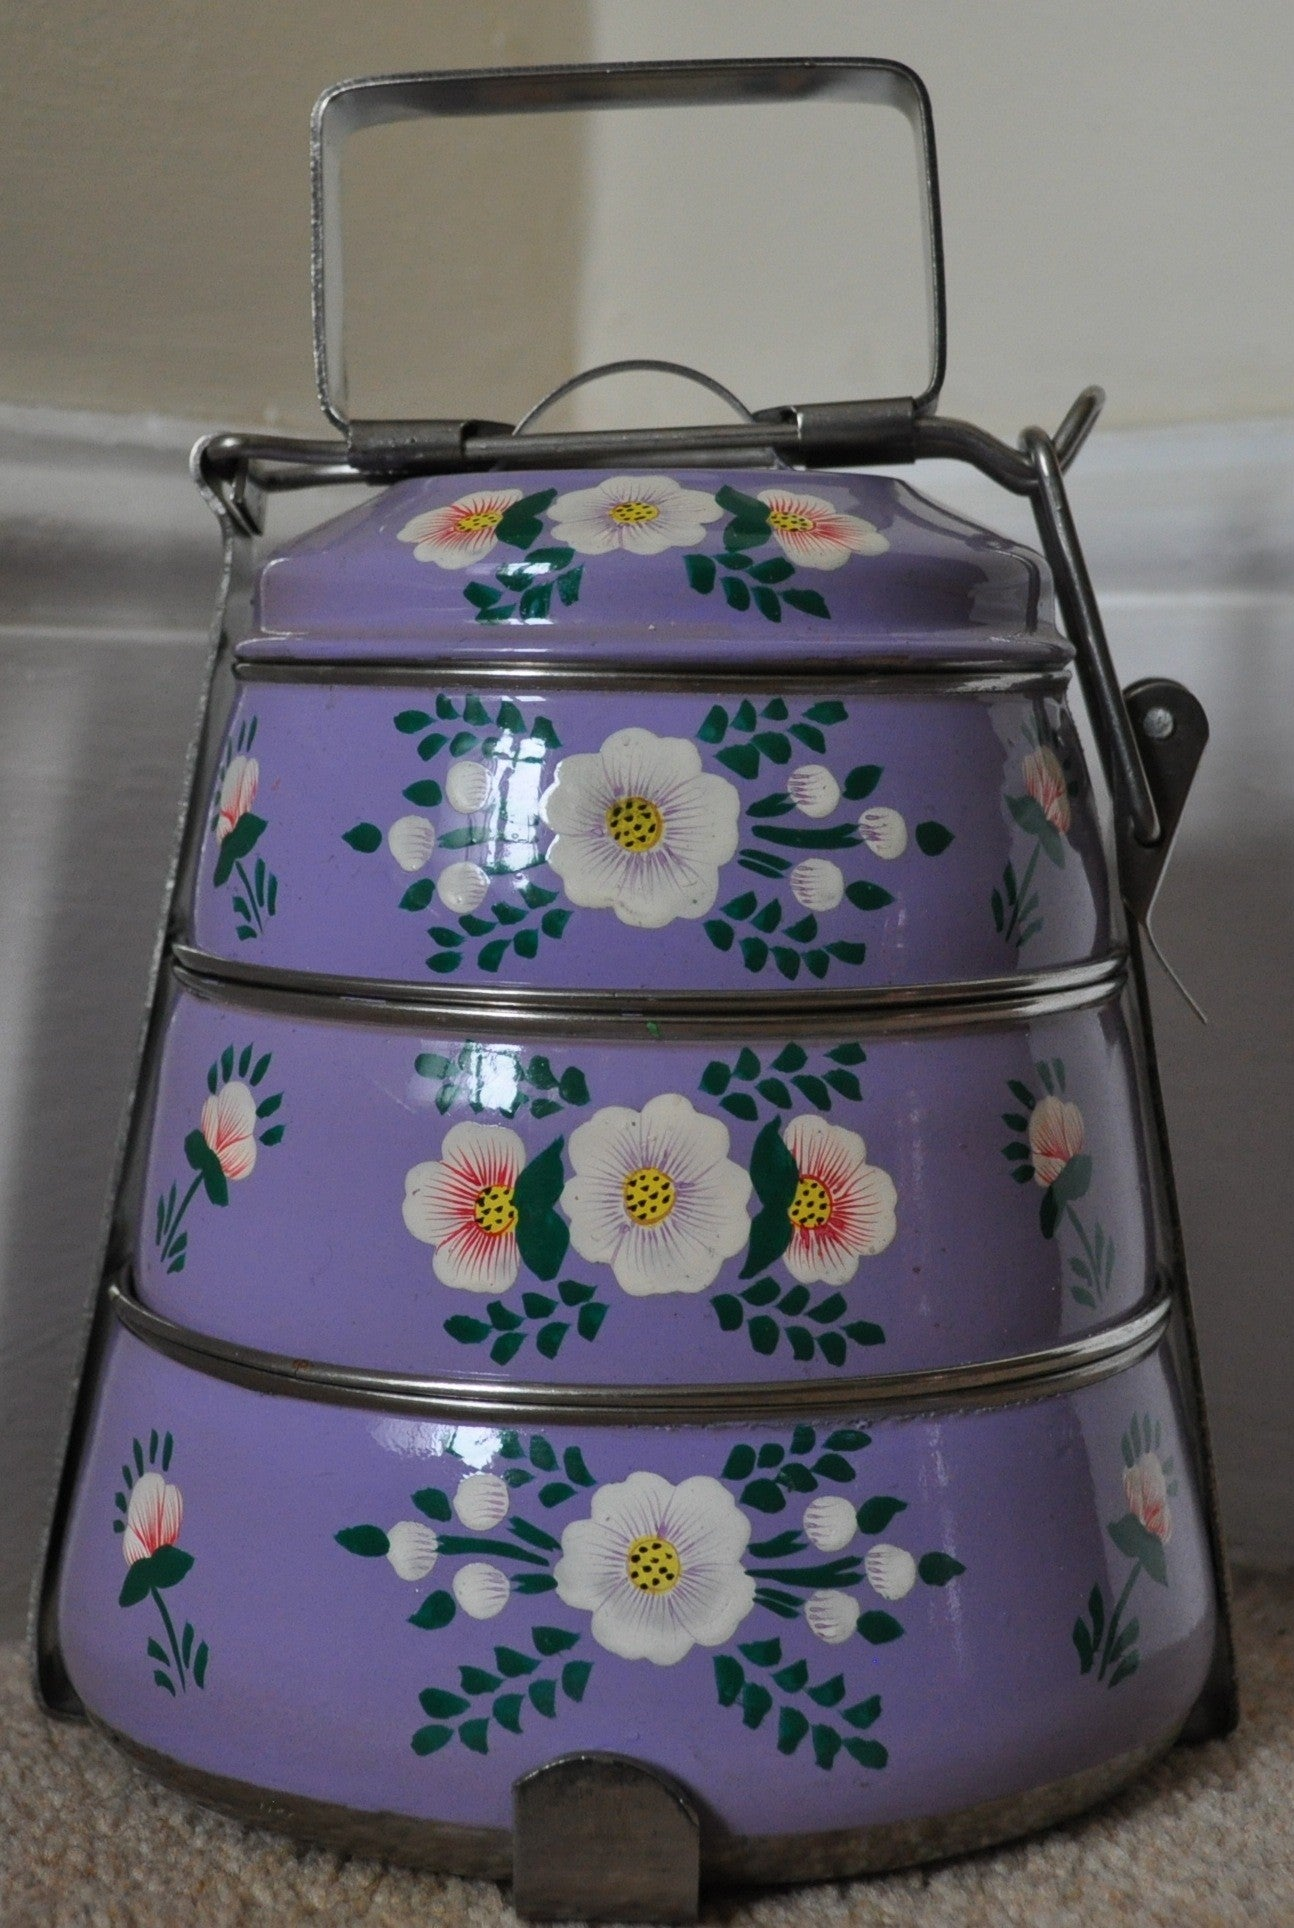 Lilac Enamelware Tiffin Pot by Jasmine White on OOSTOR.com